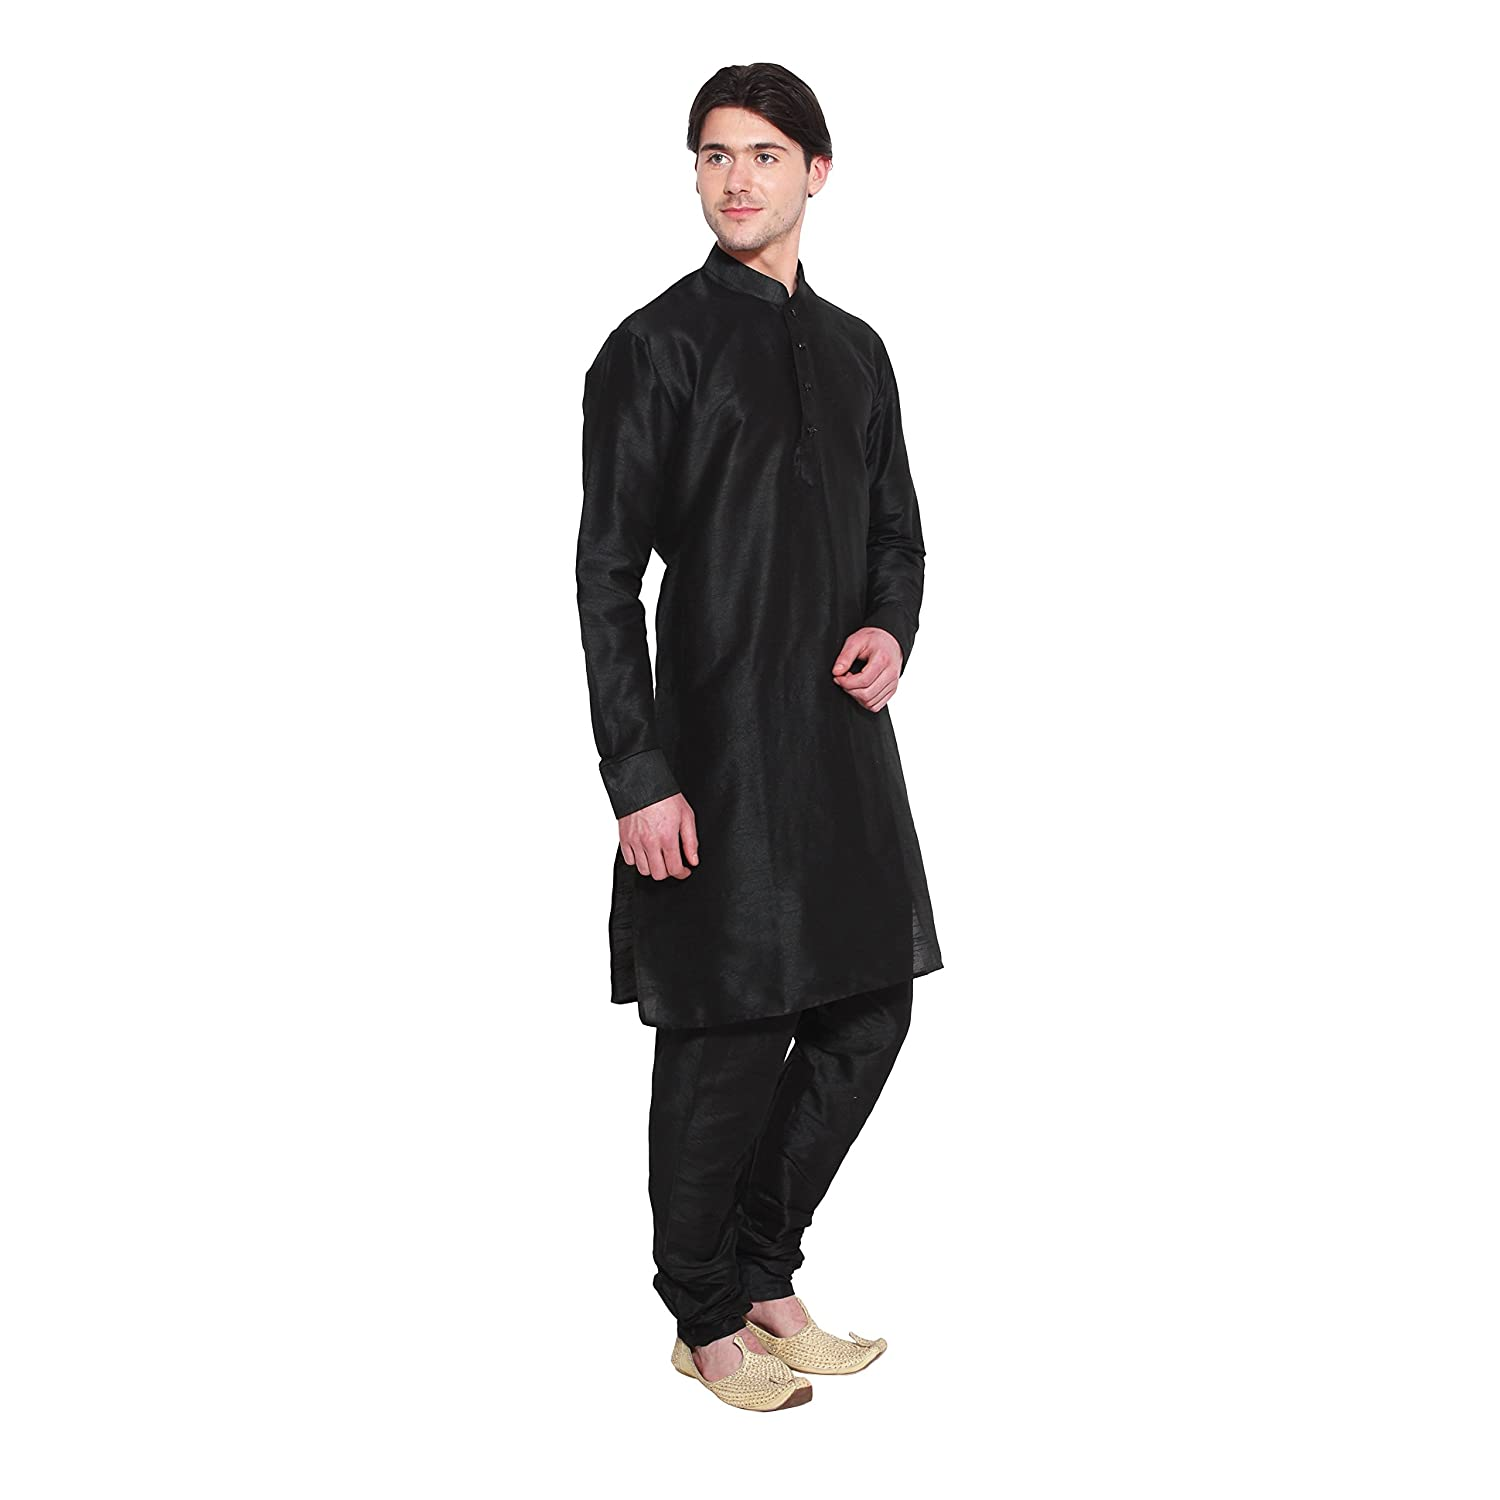 Amazon.com: Mens Kurta Pajama Set Black Bollywood Designer Ethnic Wedding Indian Apparel: Clothing